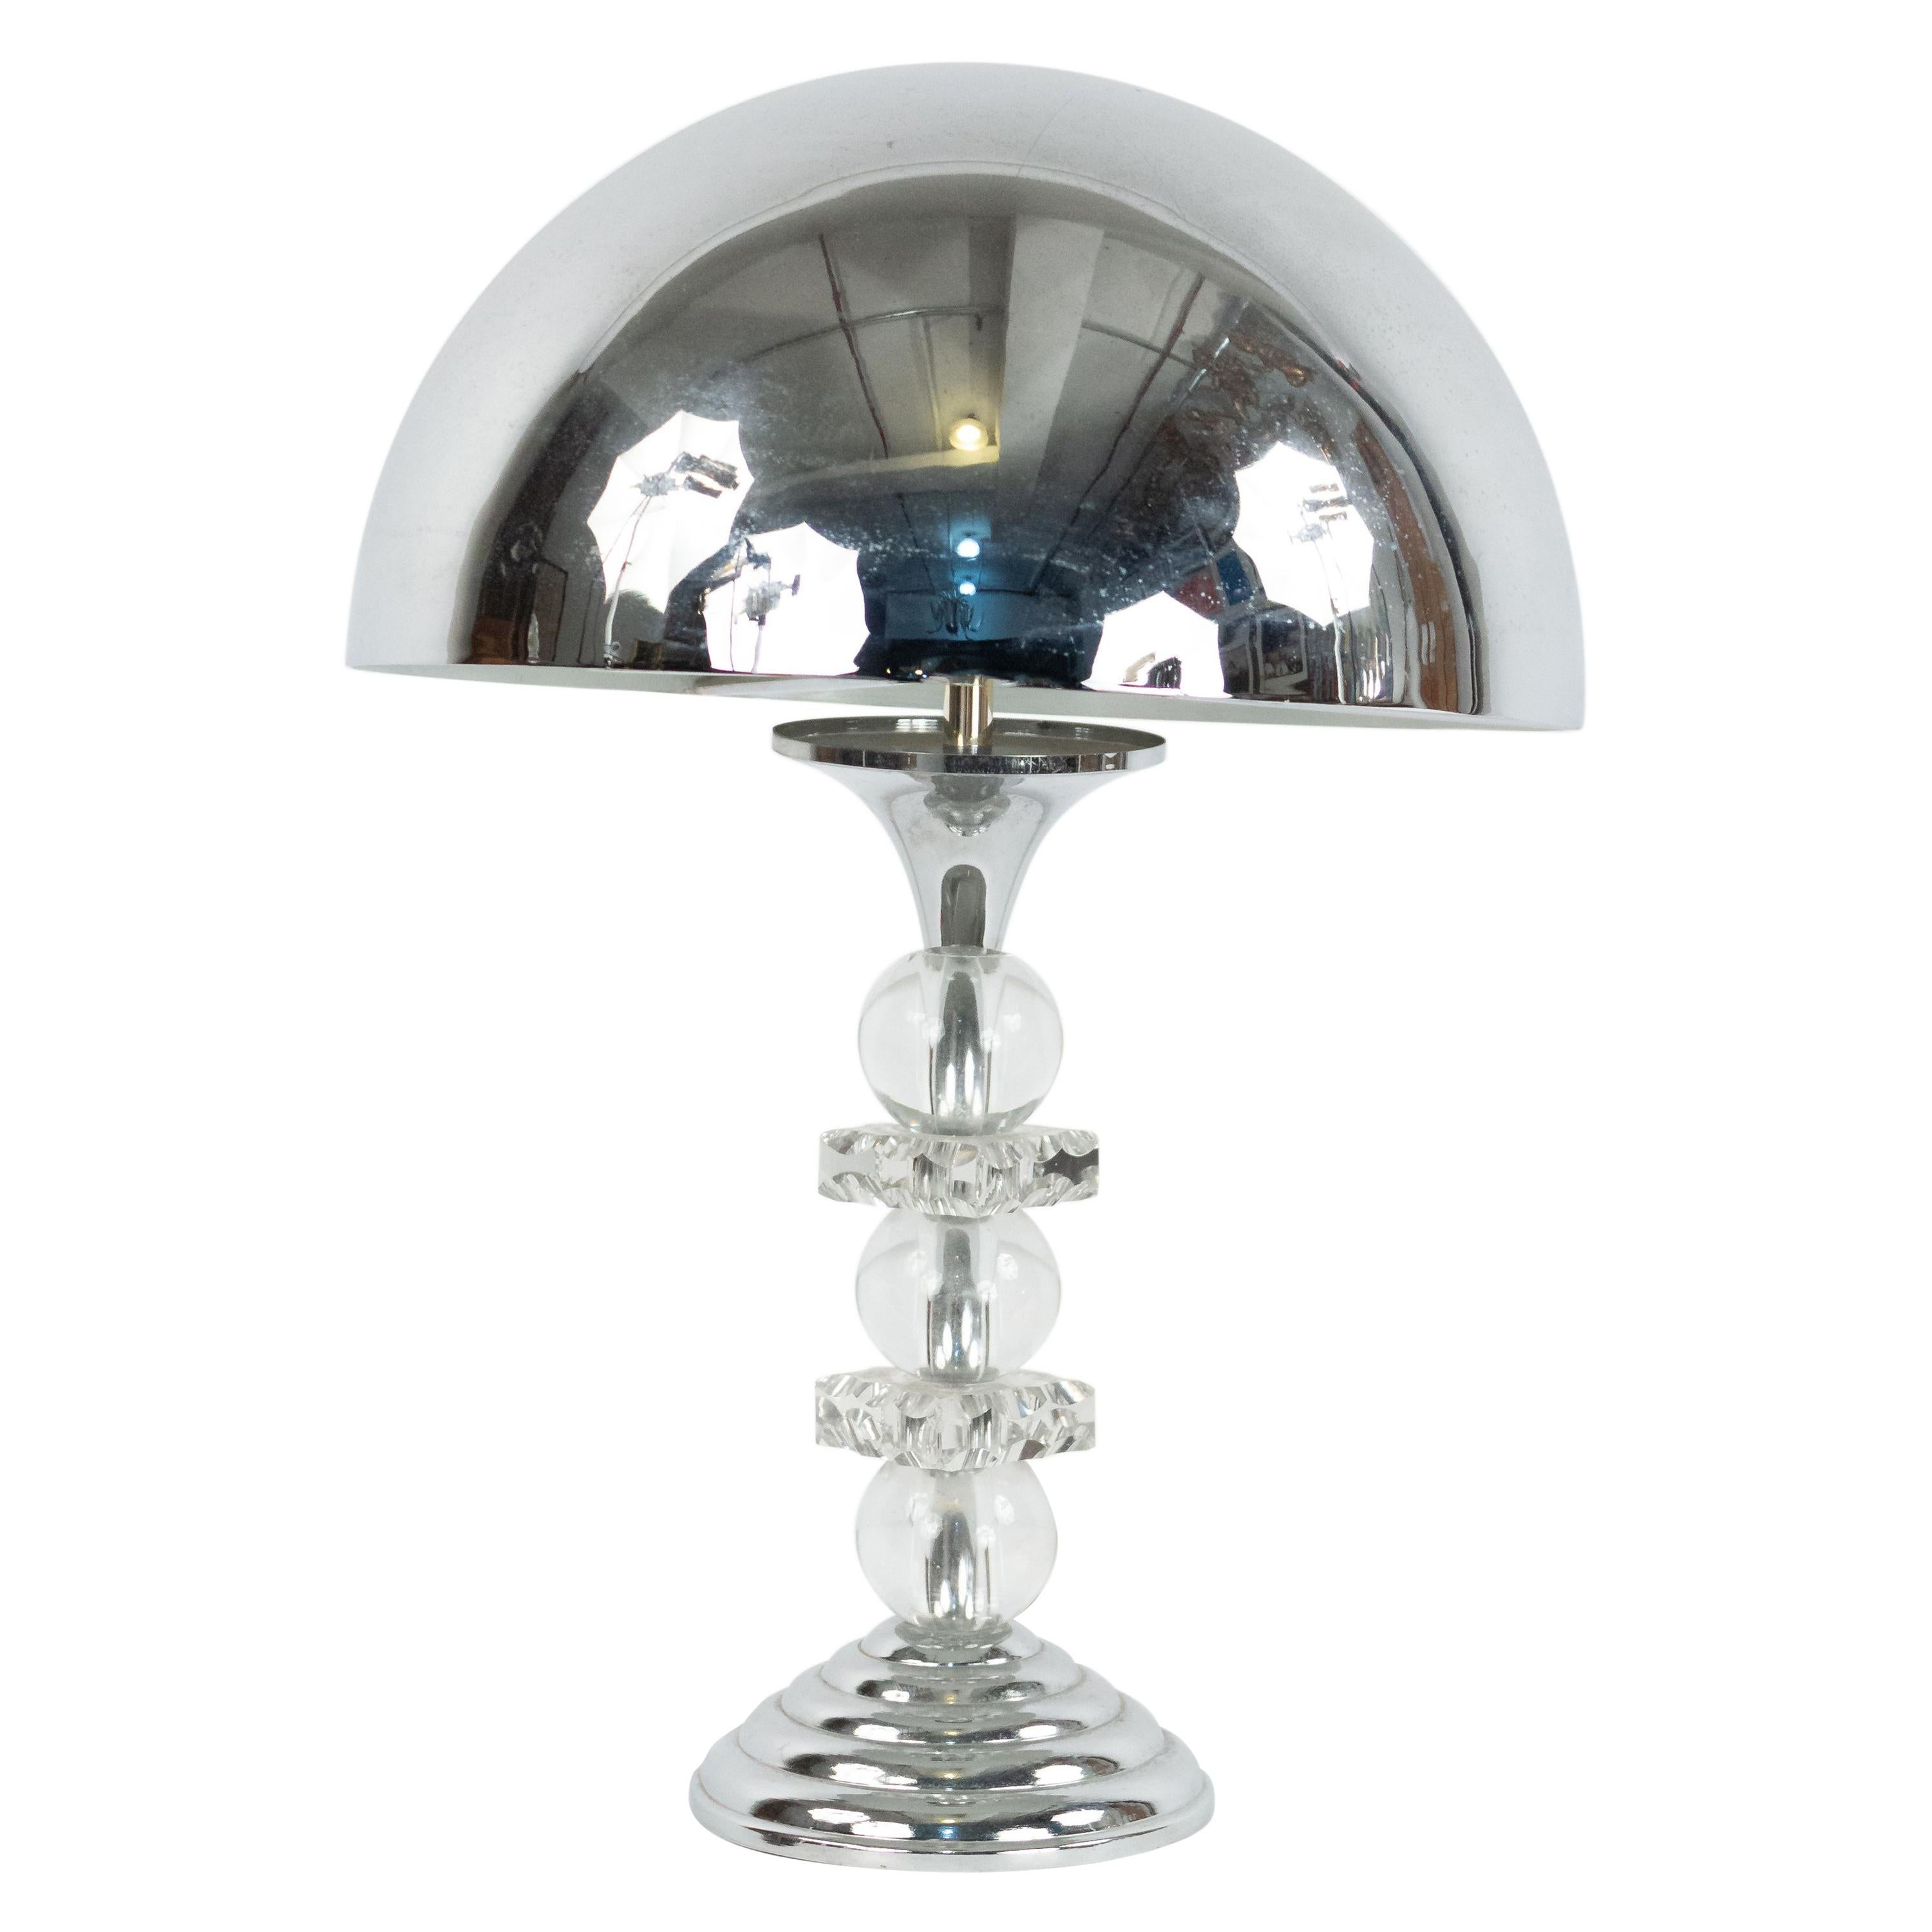 French Midcentury Chrome and Glass Table Lamp